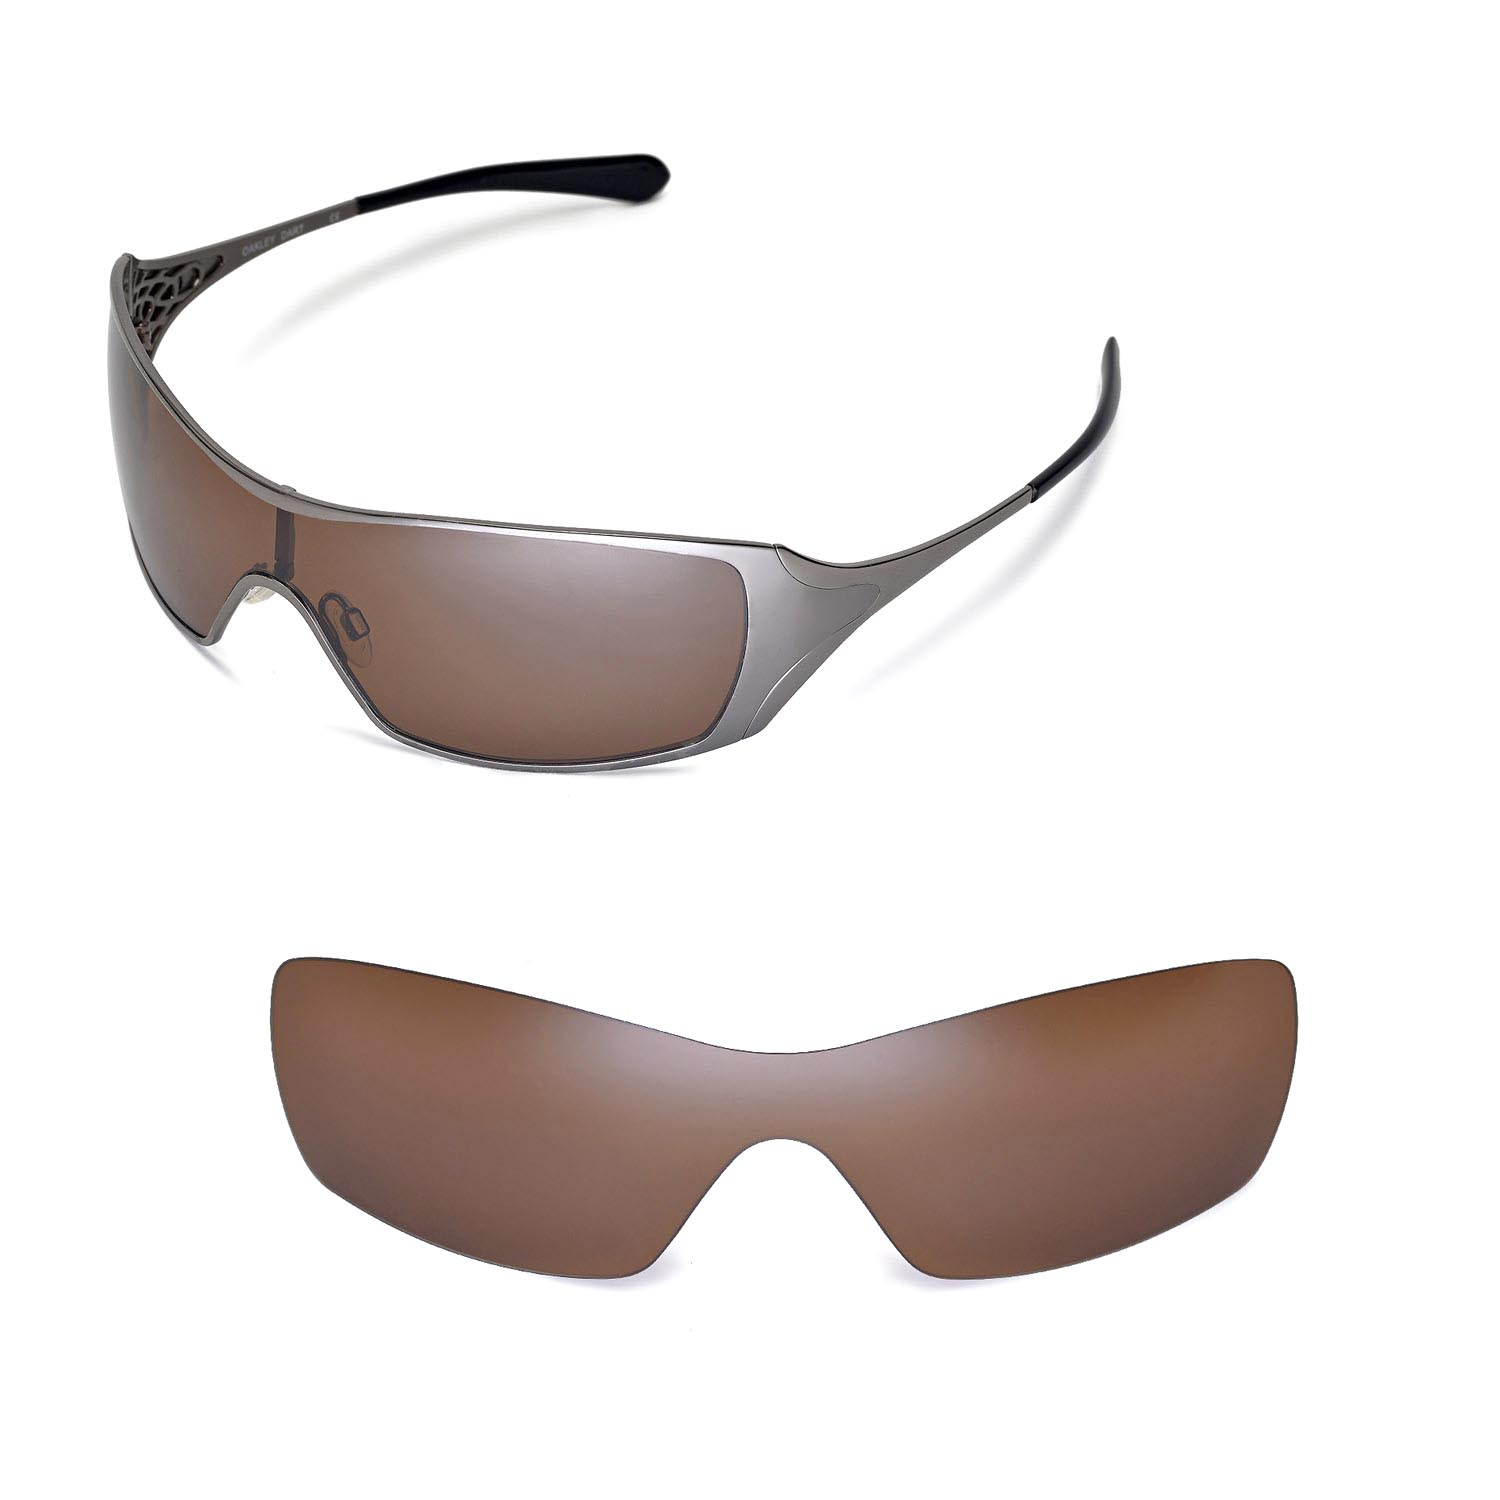 c344797ebd3 Details about New Walleva Polarized Brown Replacement Lenses For Oakley  Dart Sunglasses